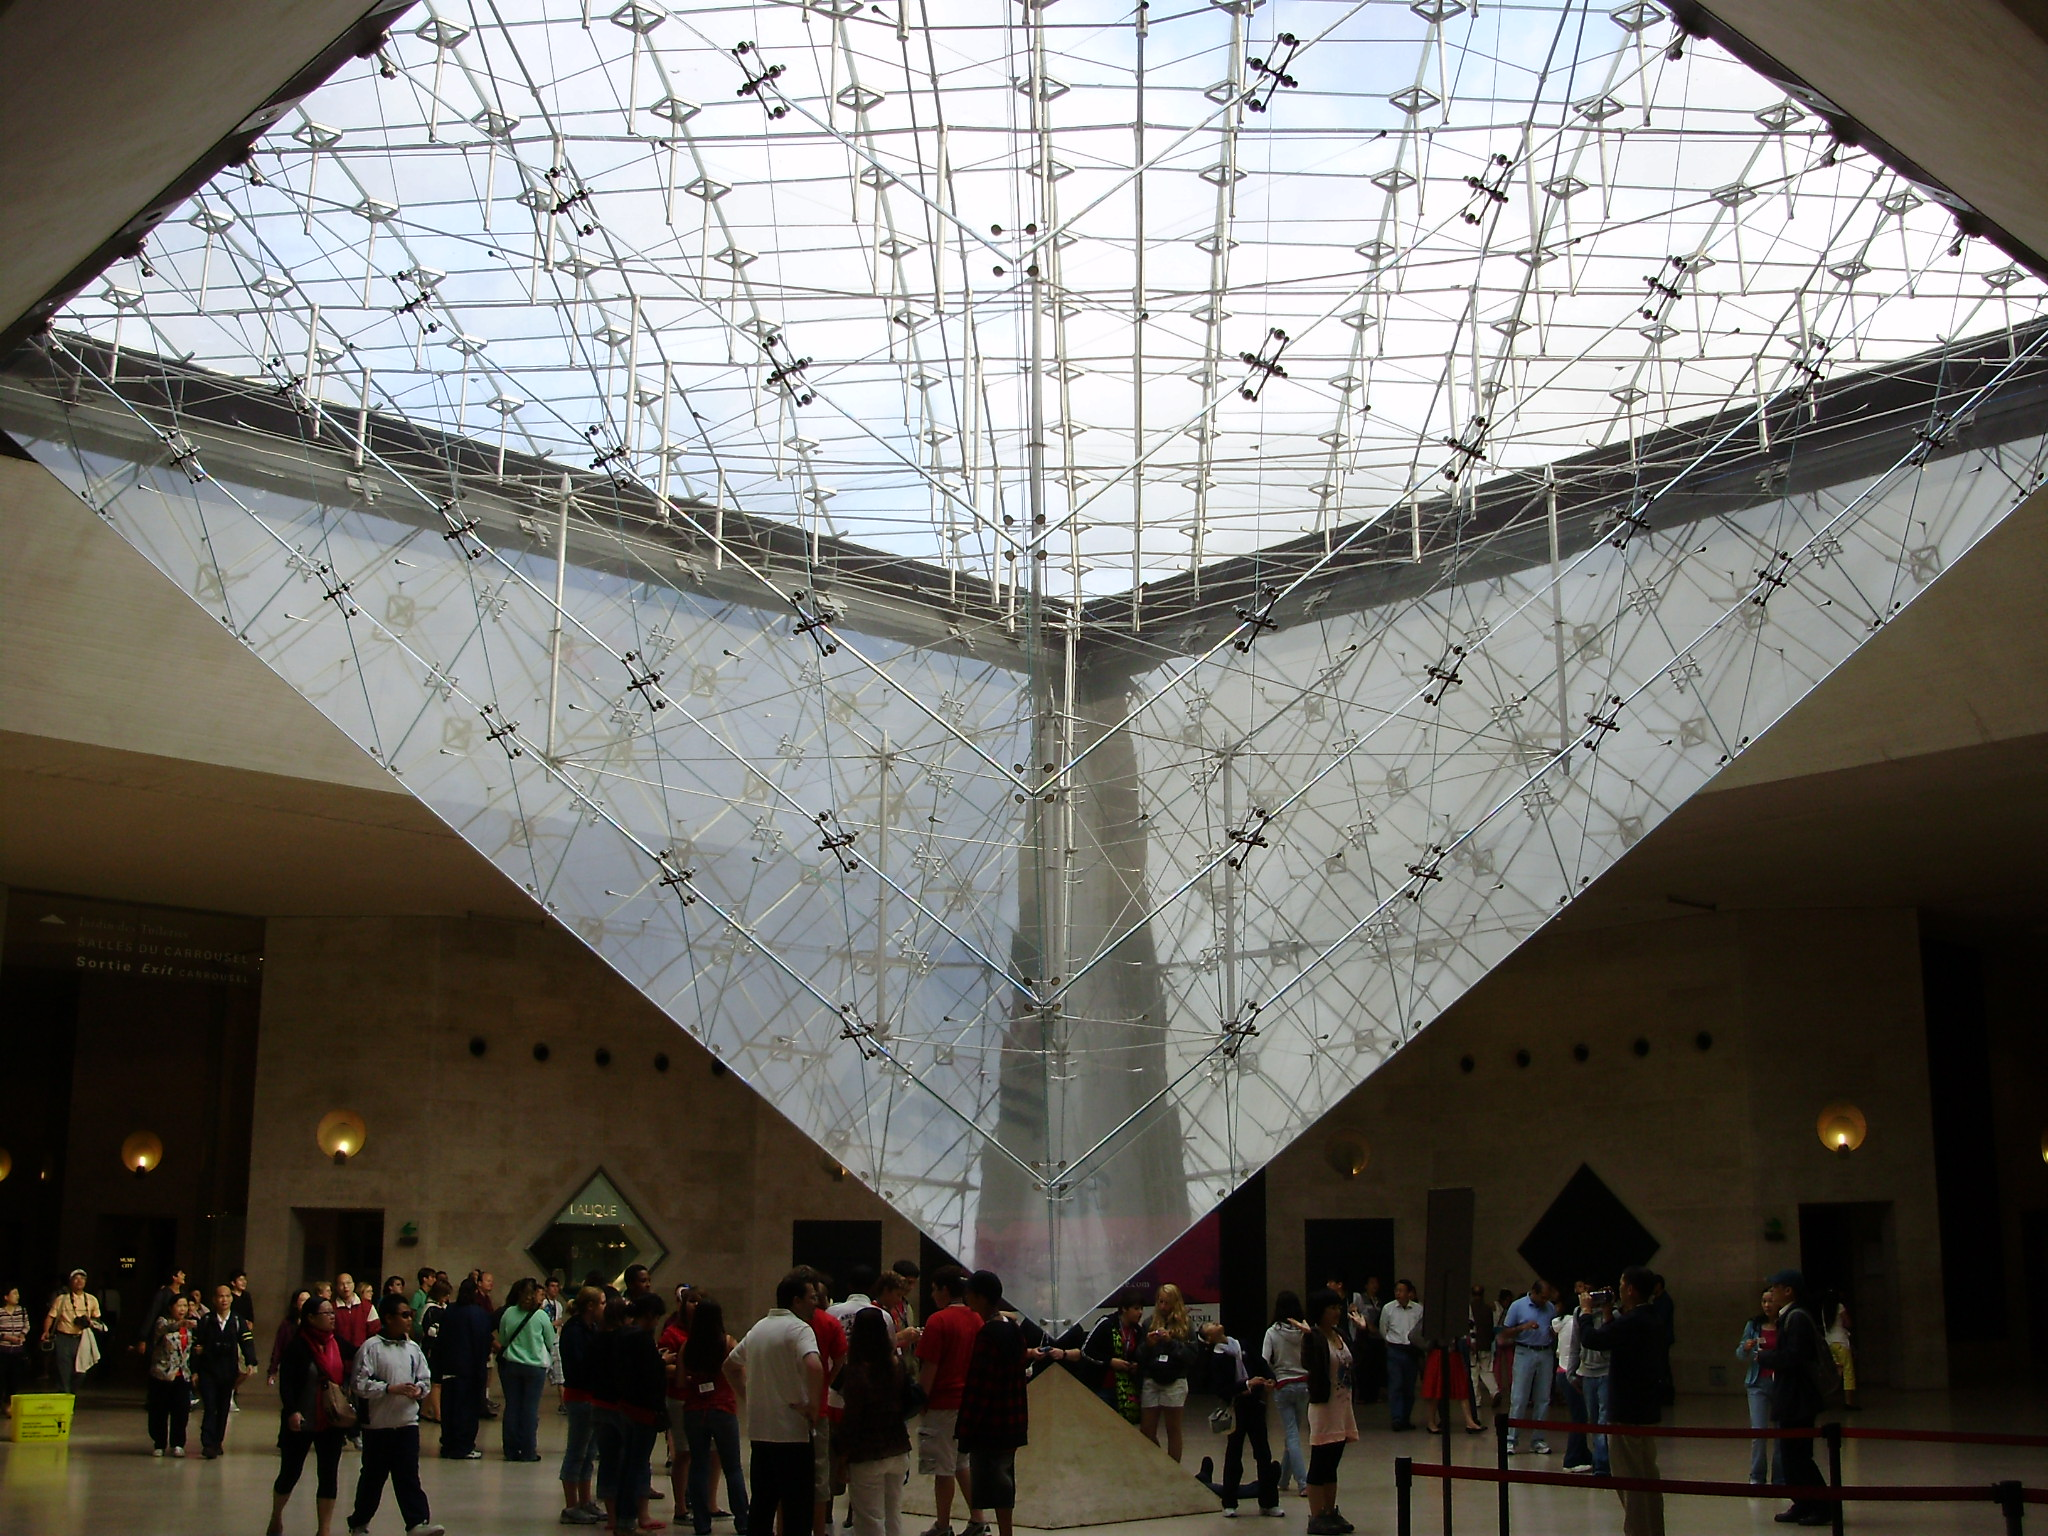 Piramide Invertida Louvre - Paris